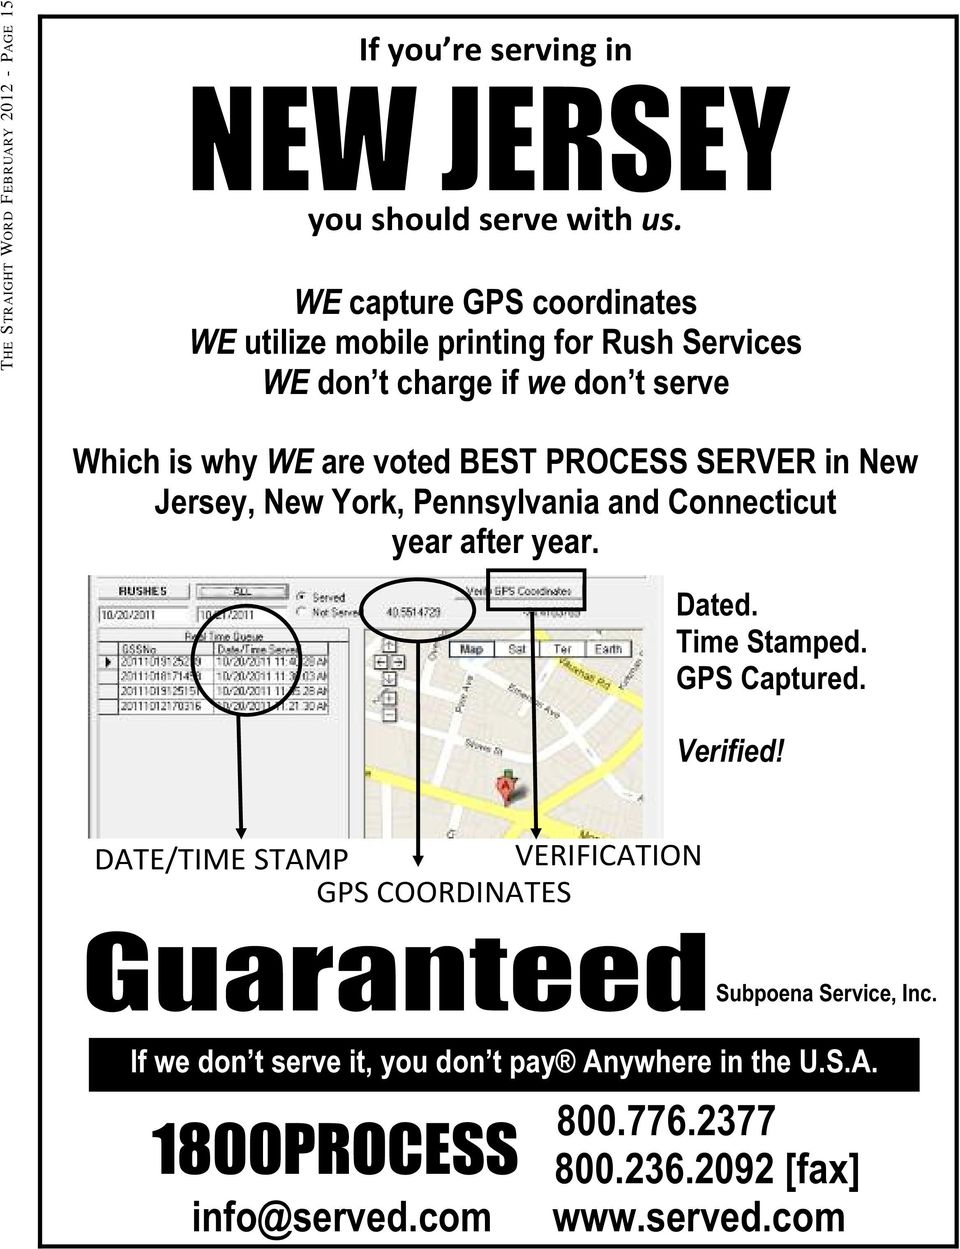 voted BEST PROCESS SERVER in New Jersey, New York, Pennsylvania and Connecticut year after year. Dated. Time Stamped. GPS Captured.